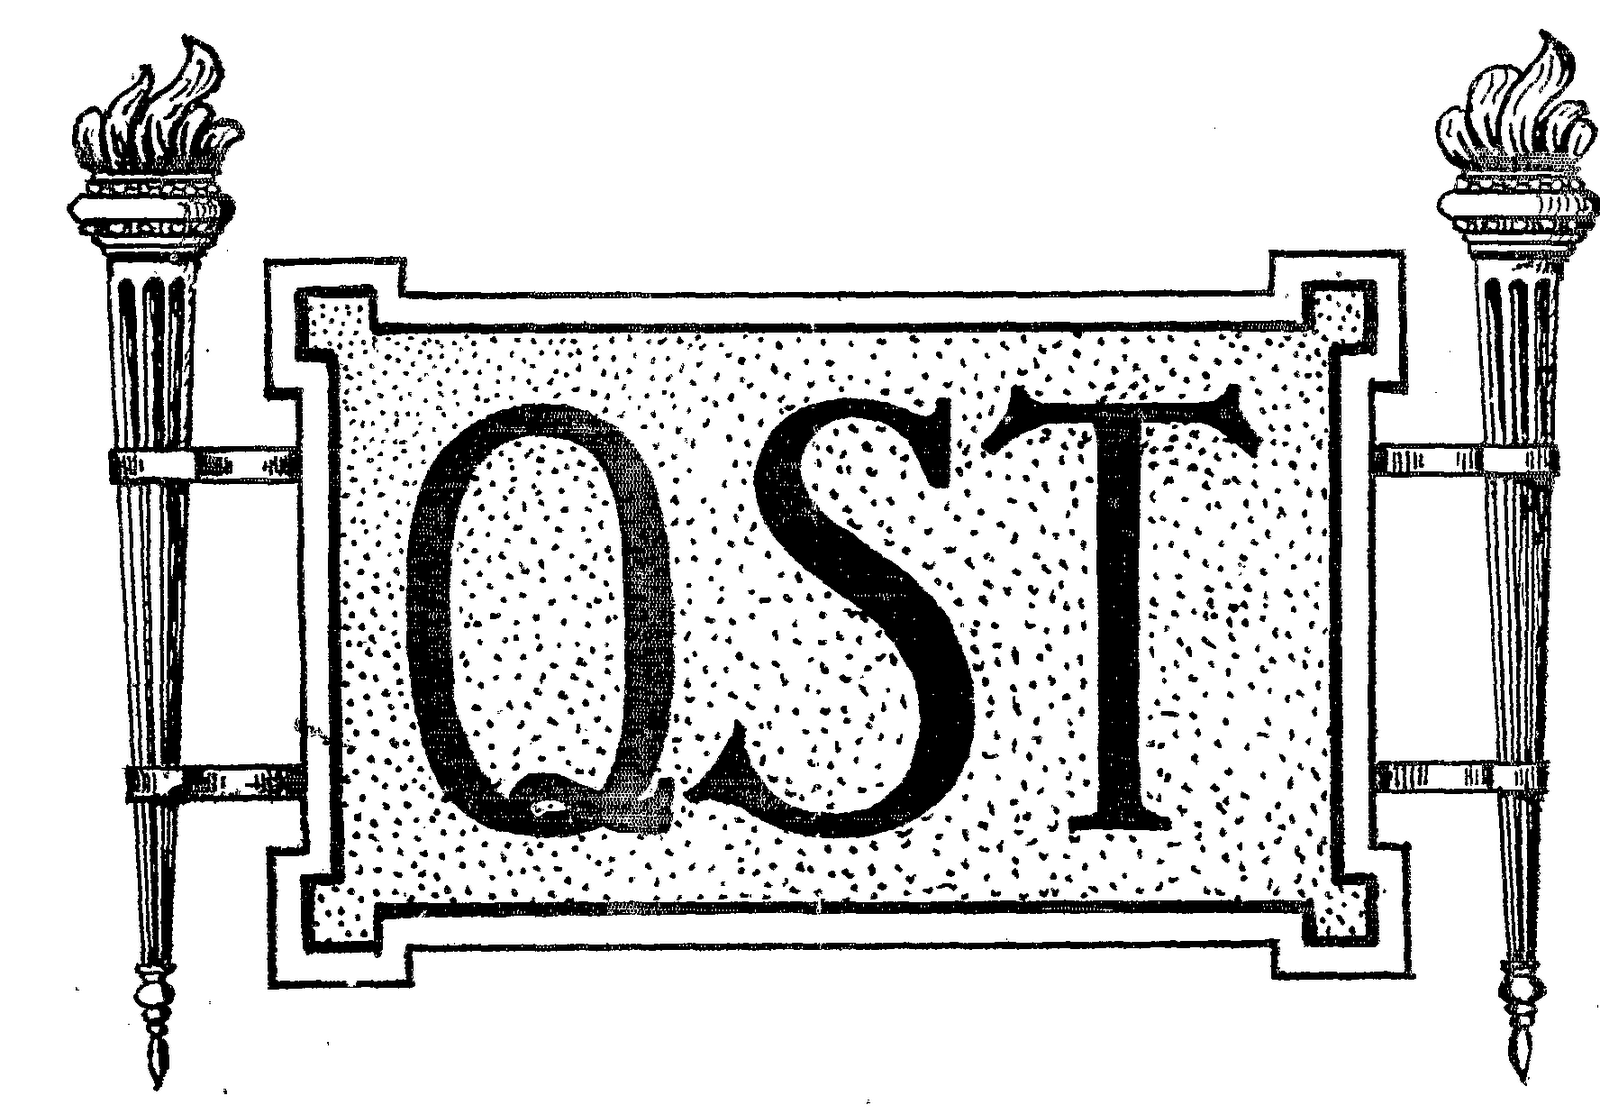 AA6E Station Log: QST & digital QST